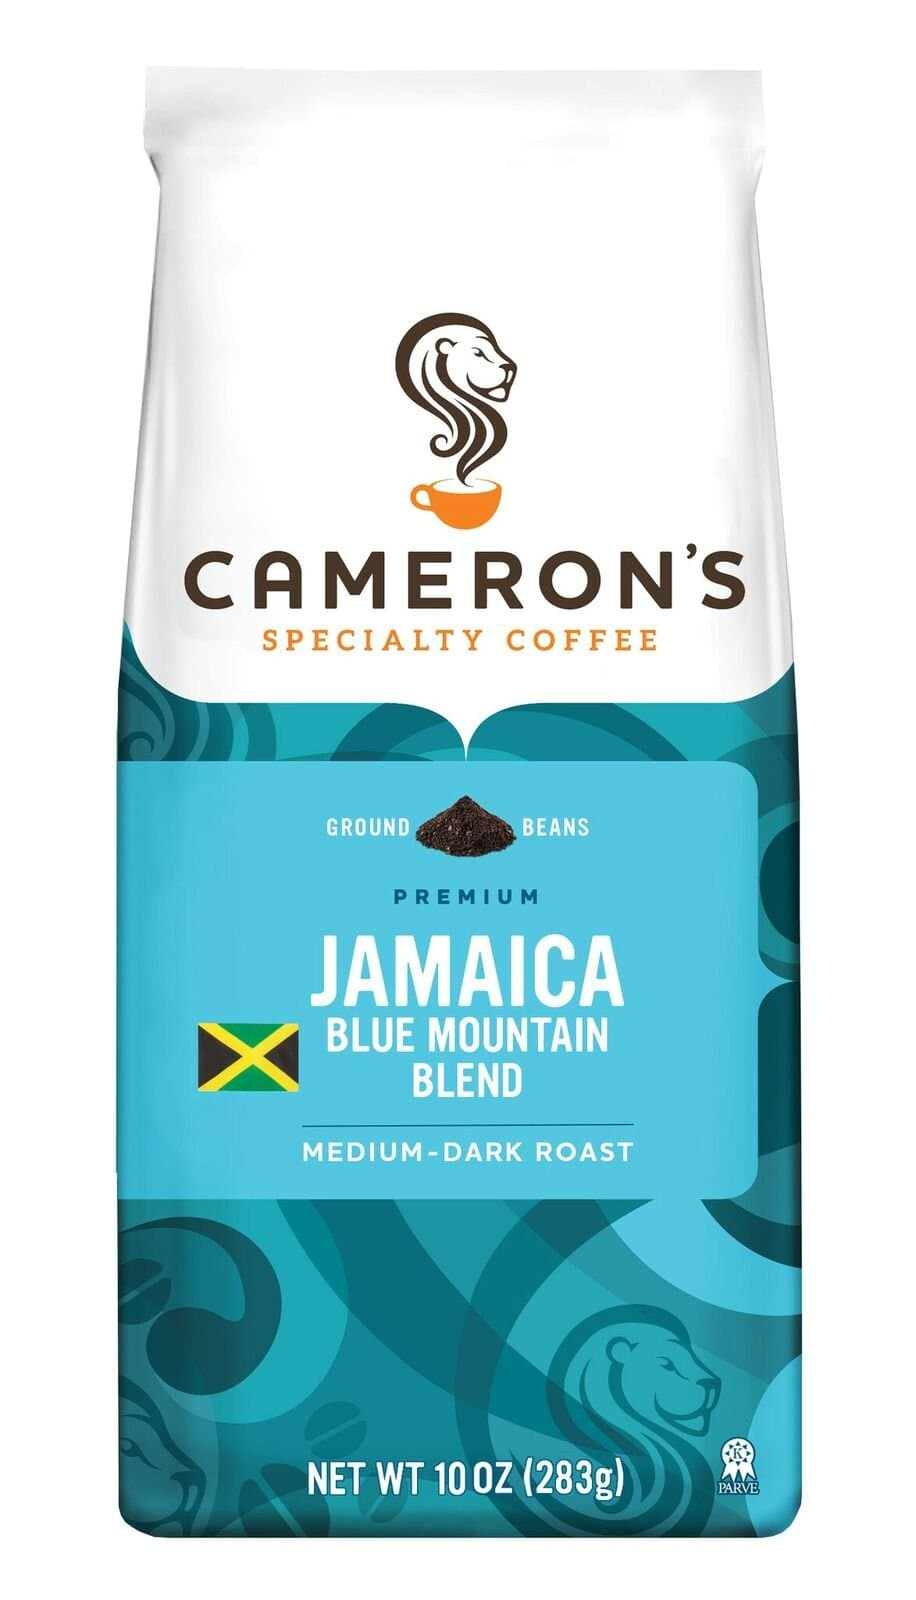 Cameron's Specialty Coffee, Jamaica Blue Mountain Blend, 10 Ounce, Whole Bean, Bag $4.24 Amazon S&S w/ 5 items